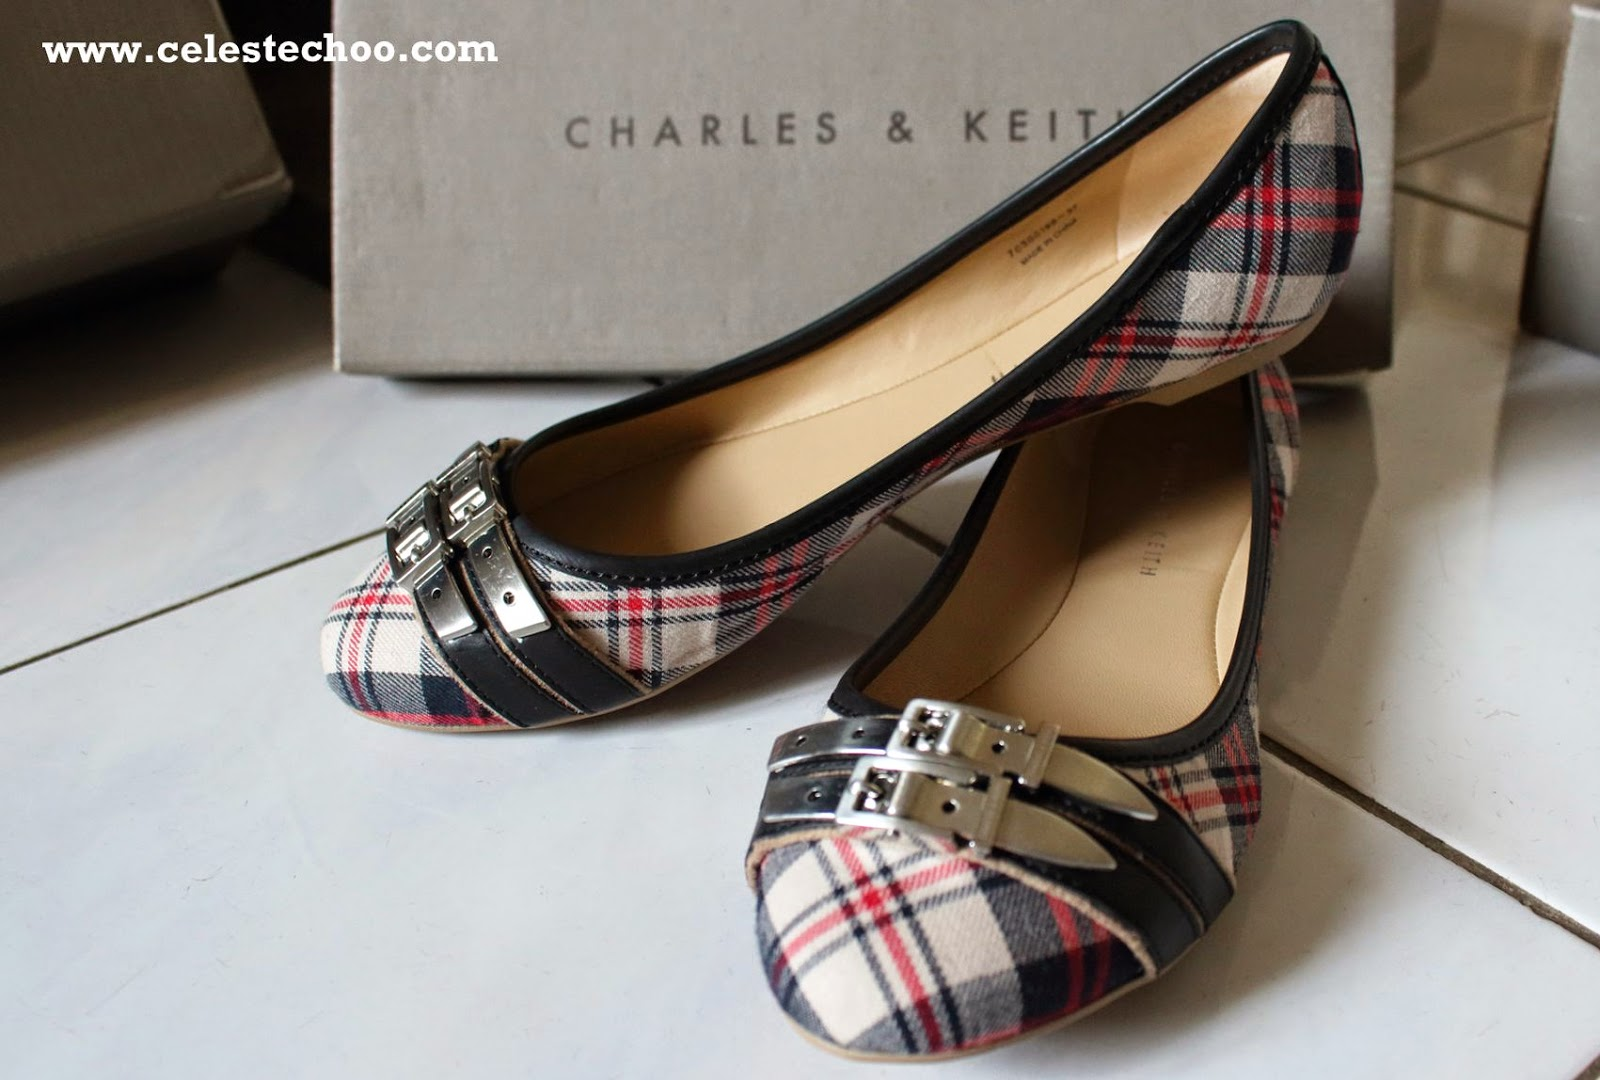 charles_keith_shoes_jpo_premium_outlets_shoe_sale